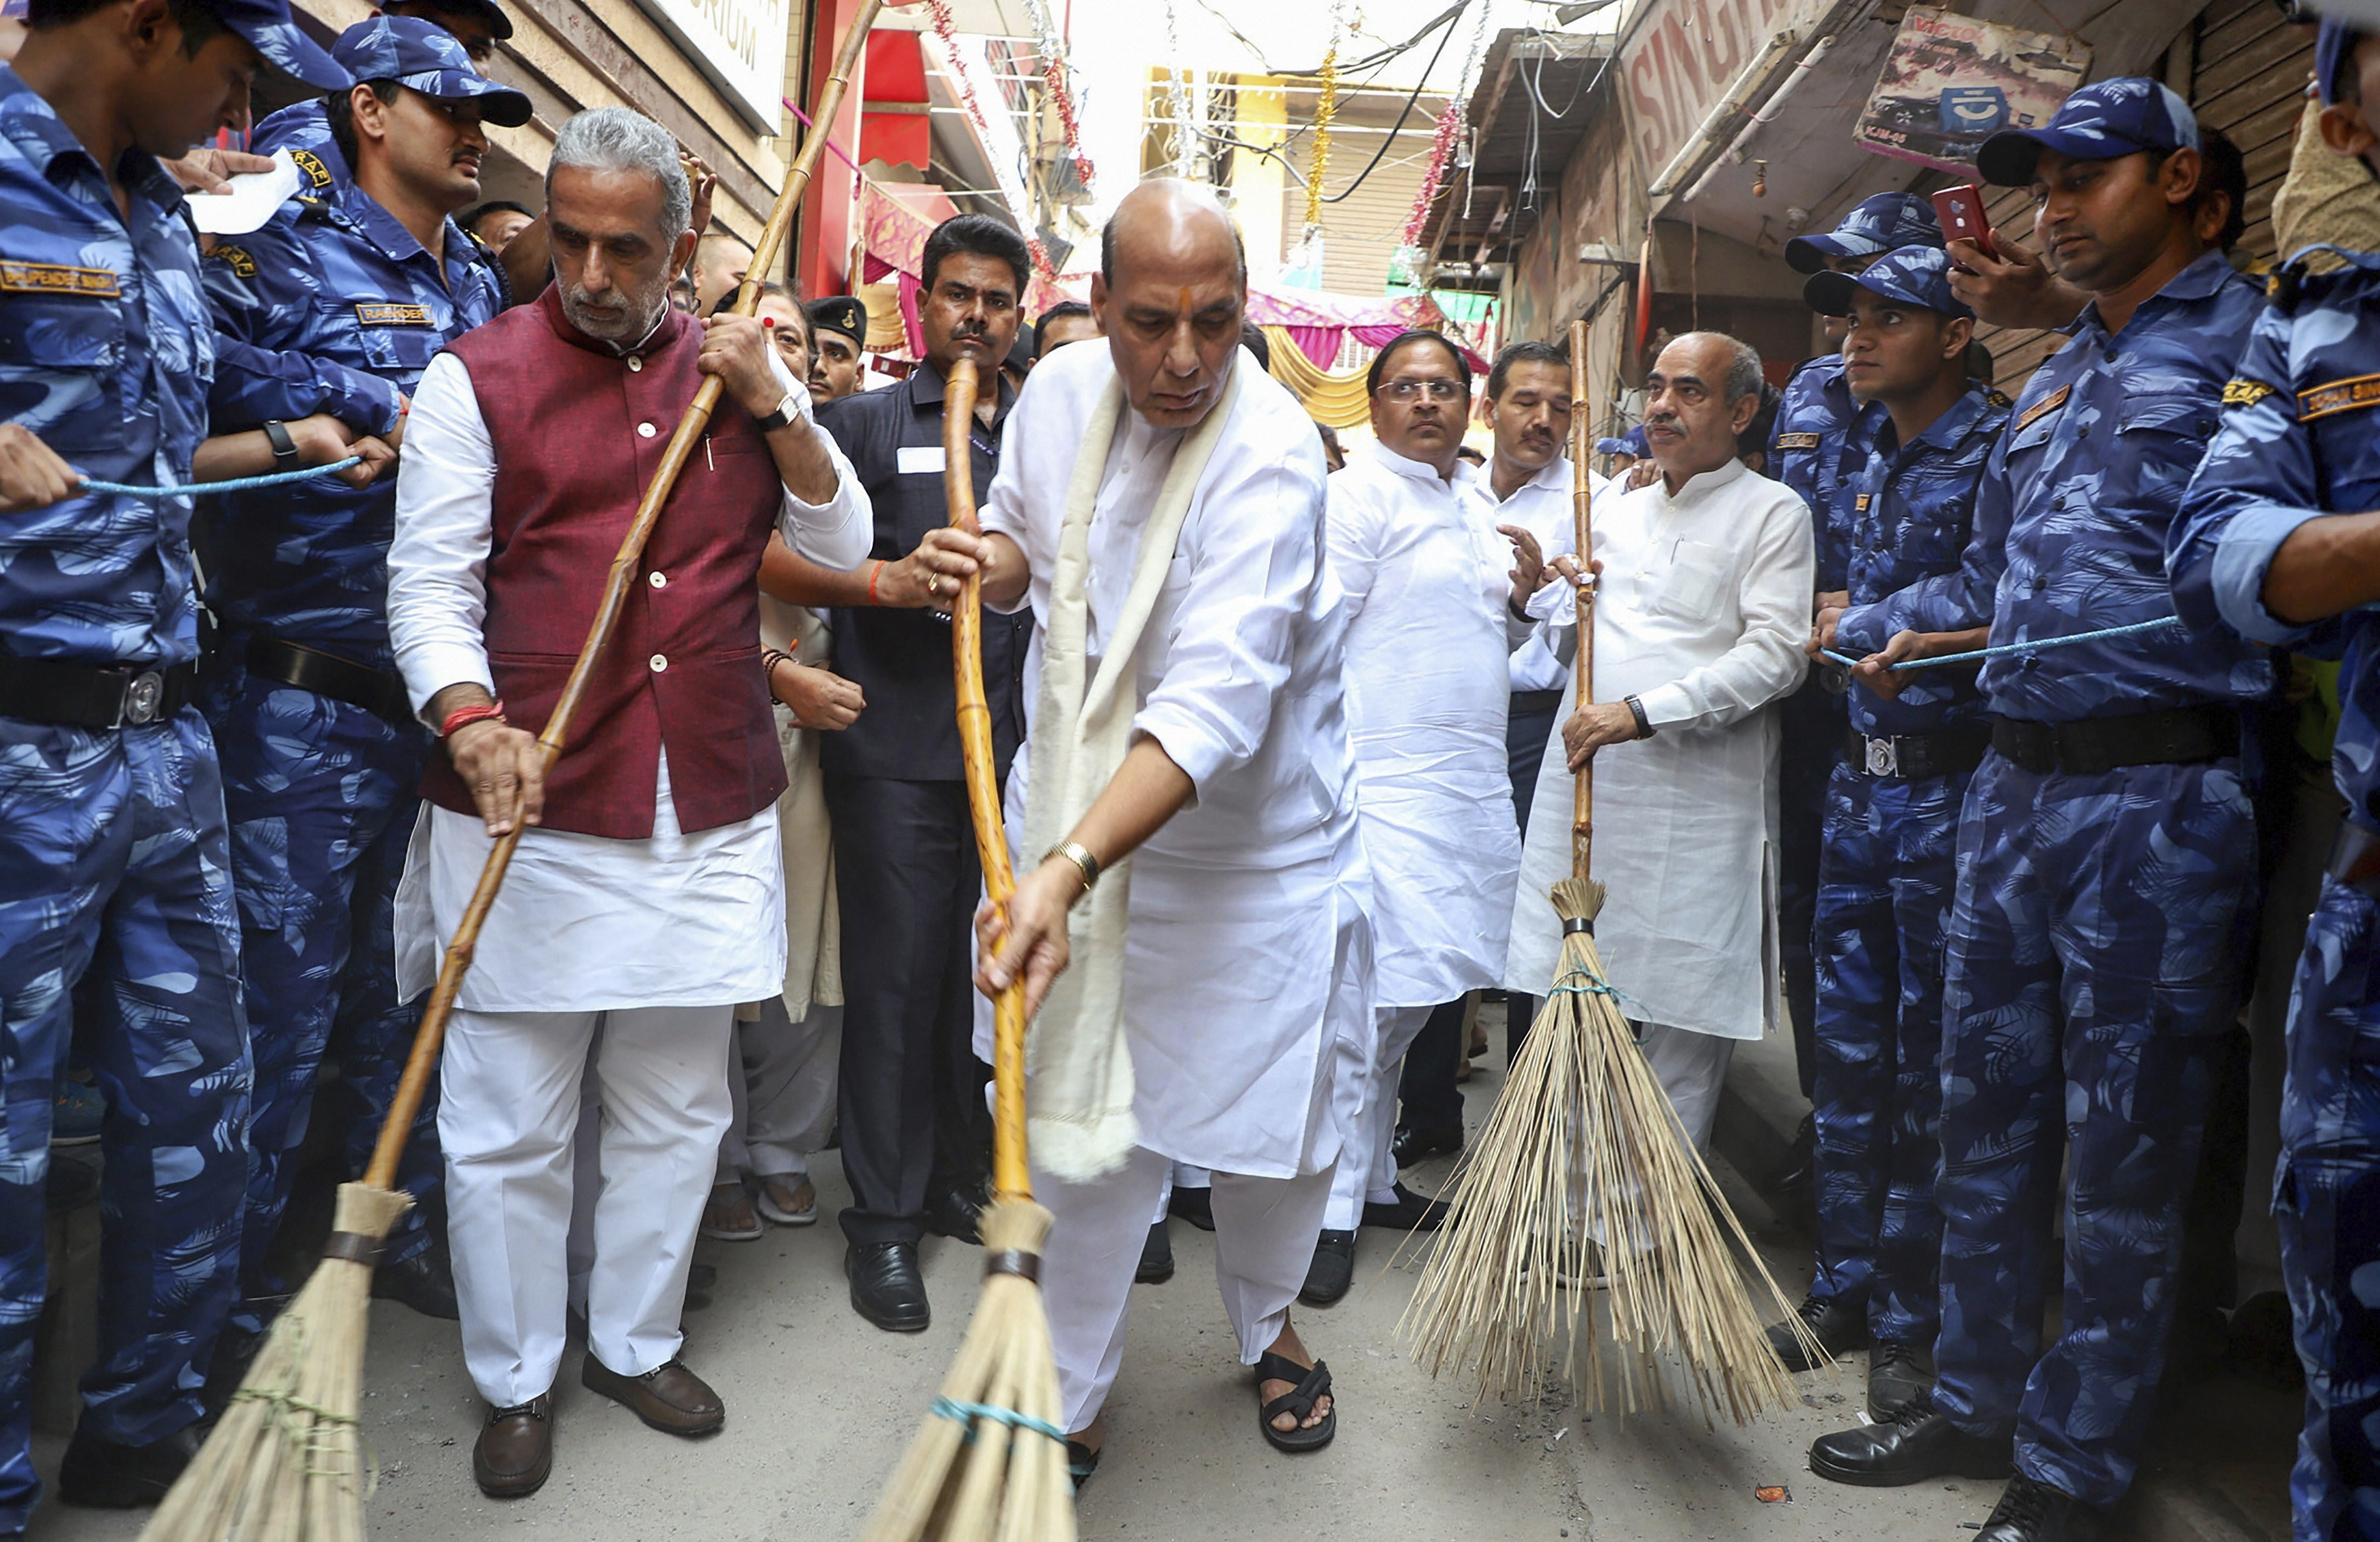 Union Home Minister Rajnath Singh with Minister of State for Social Justice & Empowerment Krishan Pal during a cleanliness drive under 'Swachhta Hi Sewa' campaign, in Faridabad - PTI